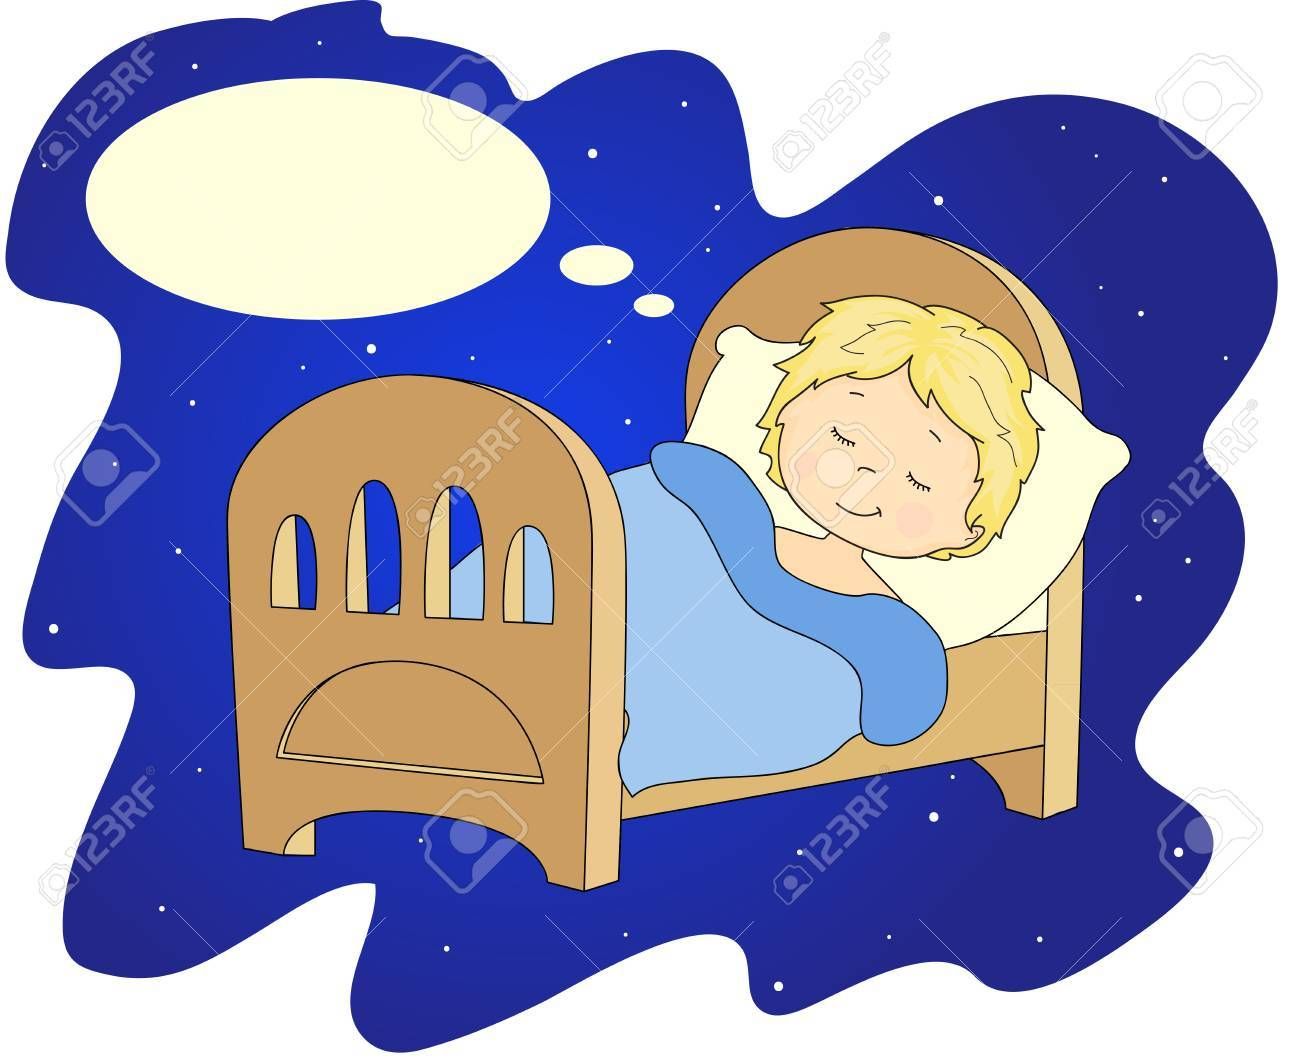 Boy Sleeping On The Bed With A Pillow And Blanket. Vector ... for Pillow And Blanket Clipart  45jwn